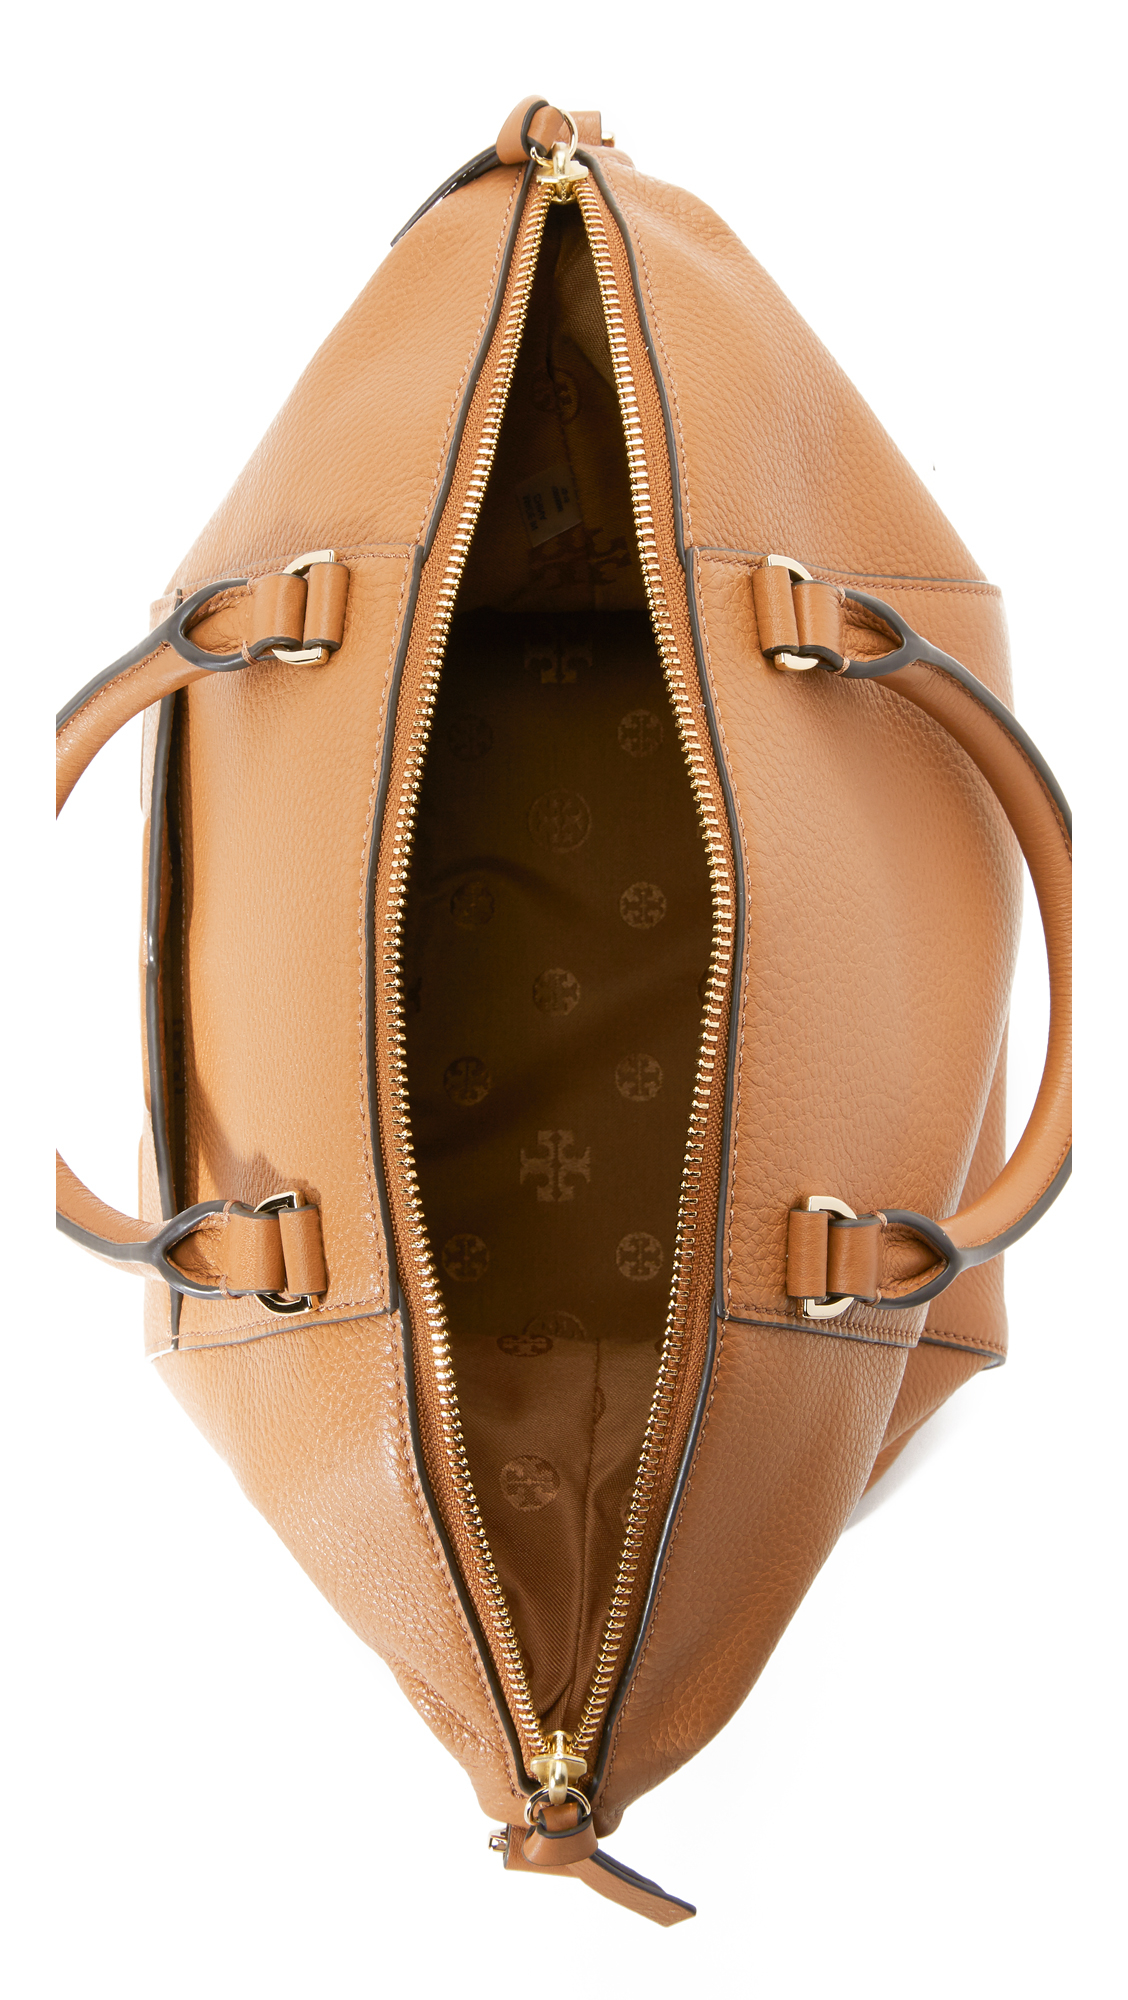 Lyst - Tory Burch Bombe T Medium Slouchy Satchel in Natural d3a05d3367d16